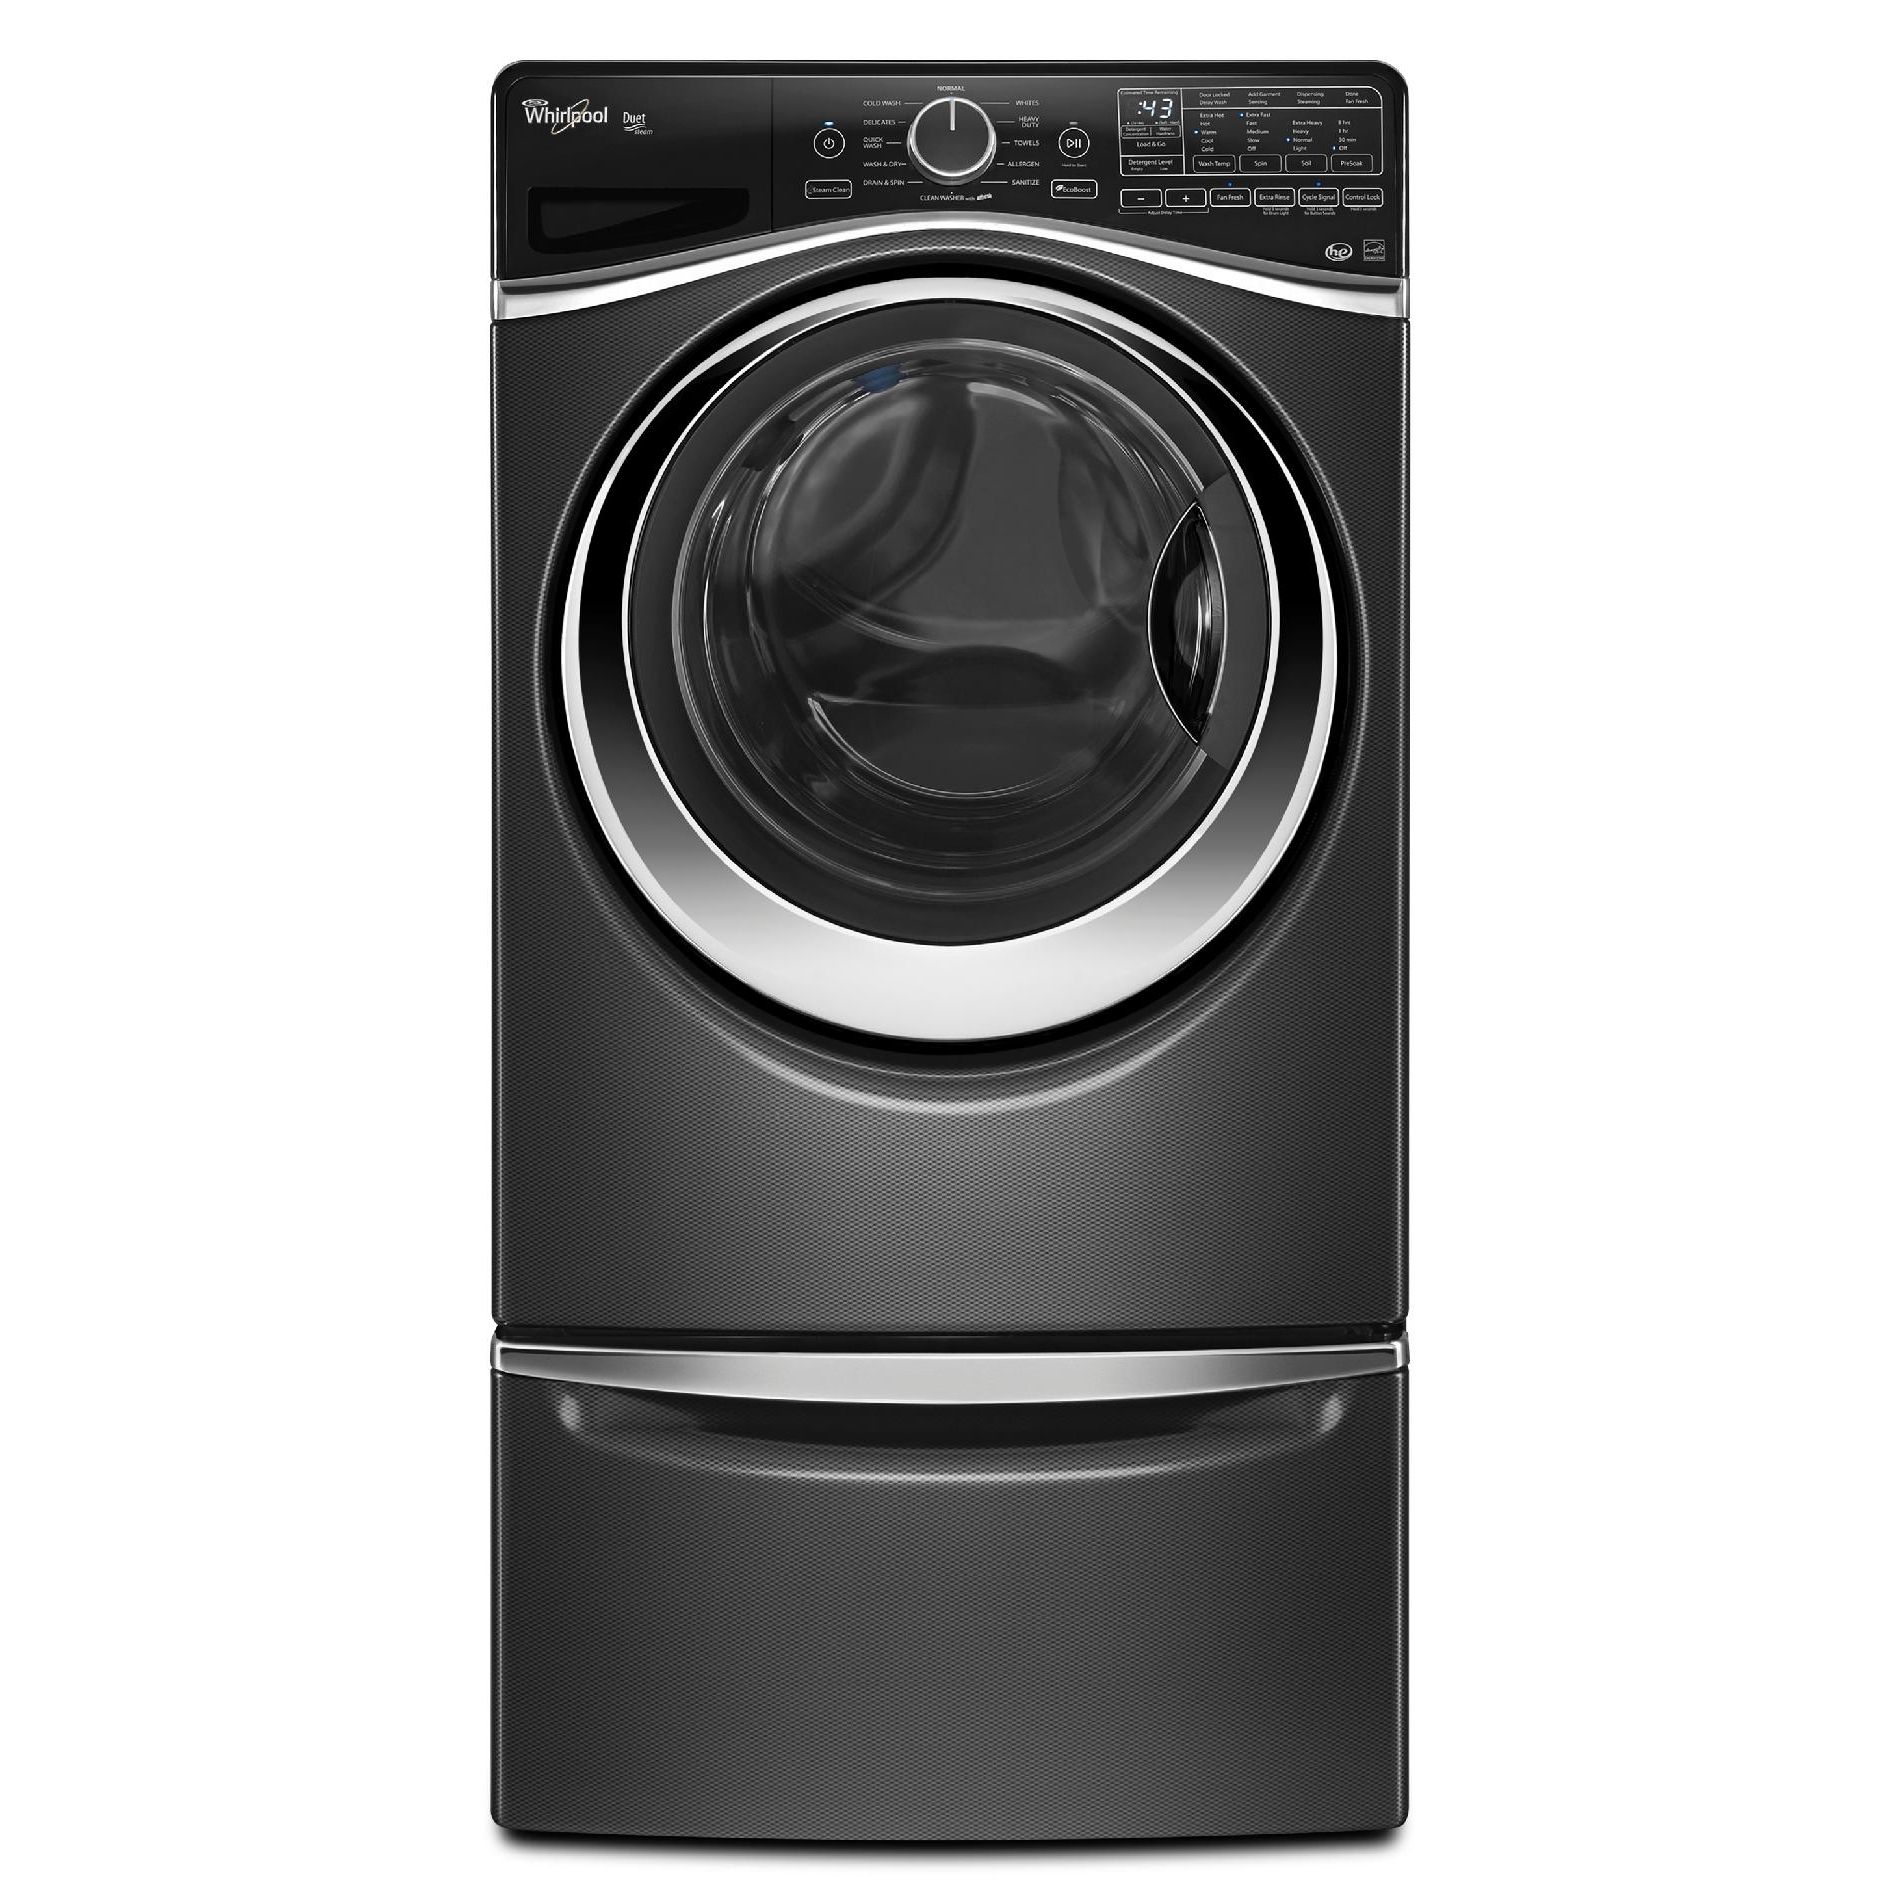 Whirlpool WFW97HEDBD 4.5 cu. ft. Duet® Front-Load Washer w/ Load and Go System - Black Diamond